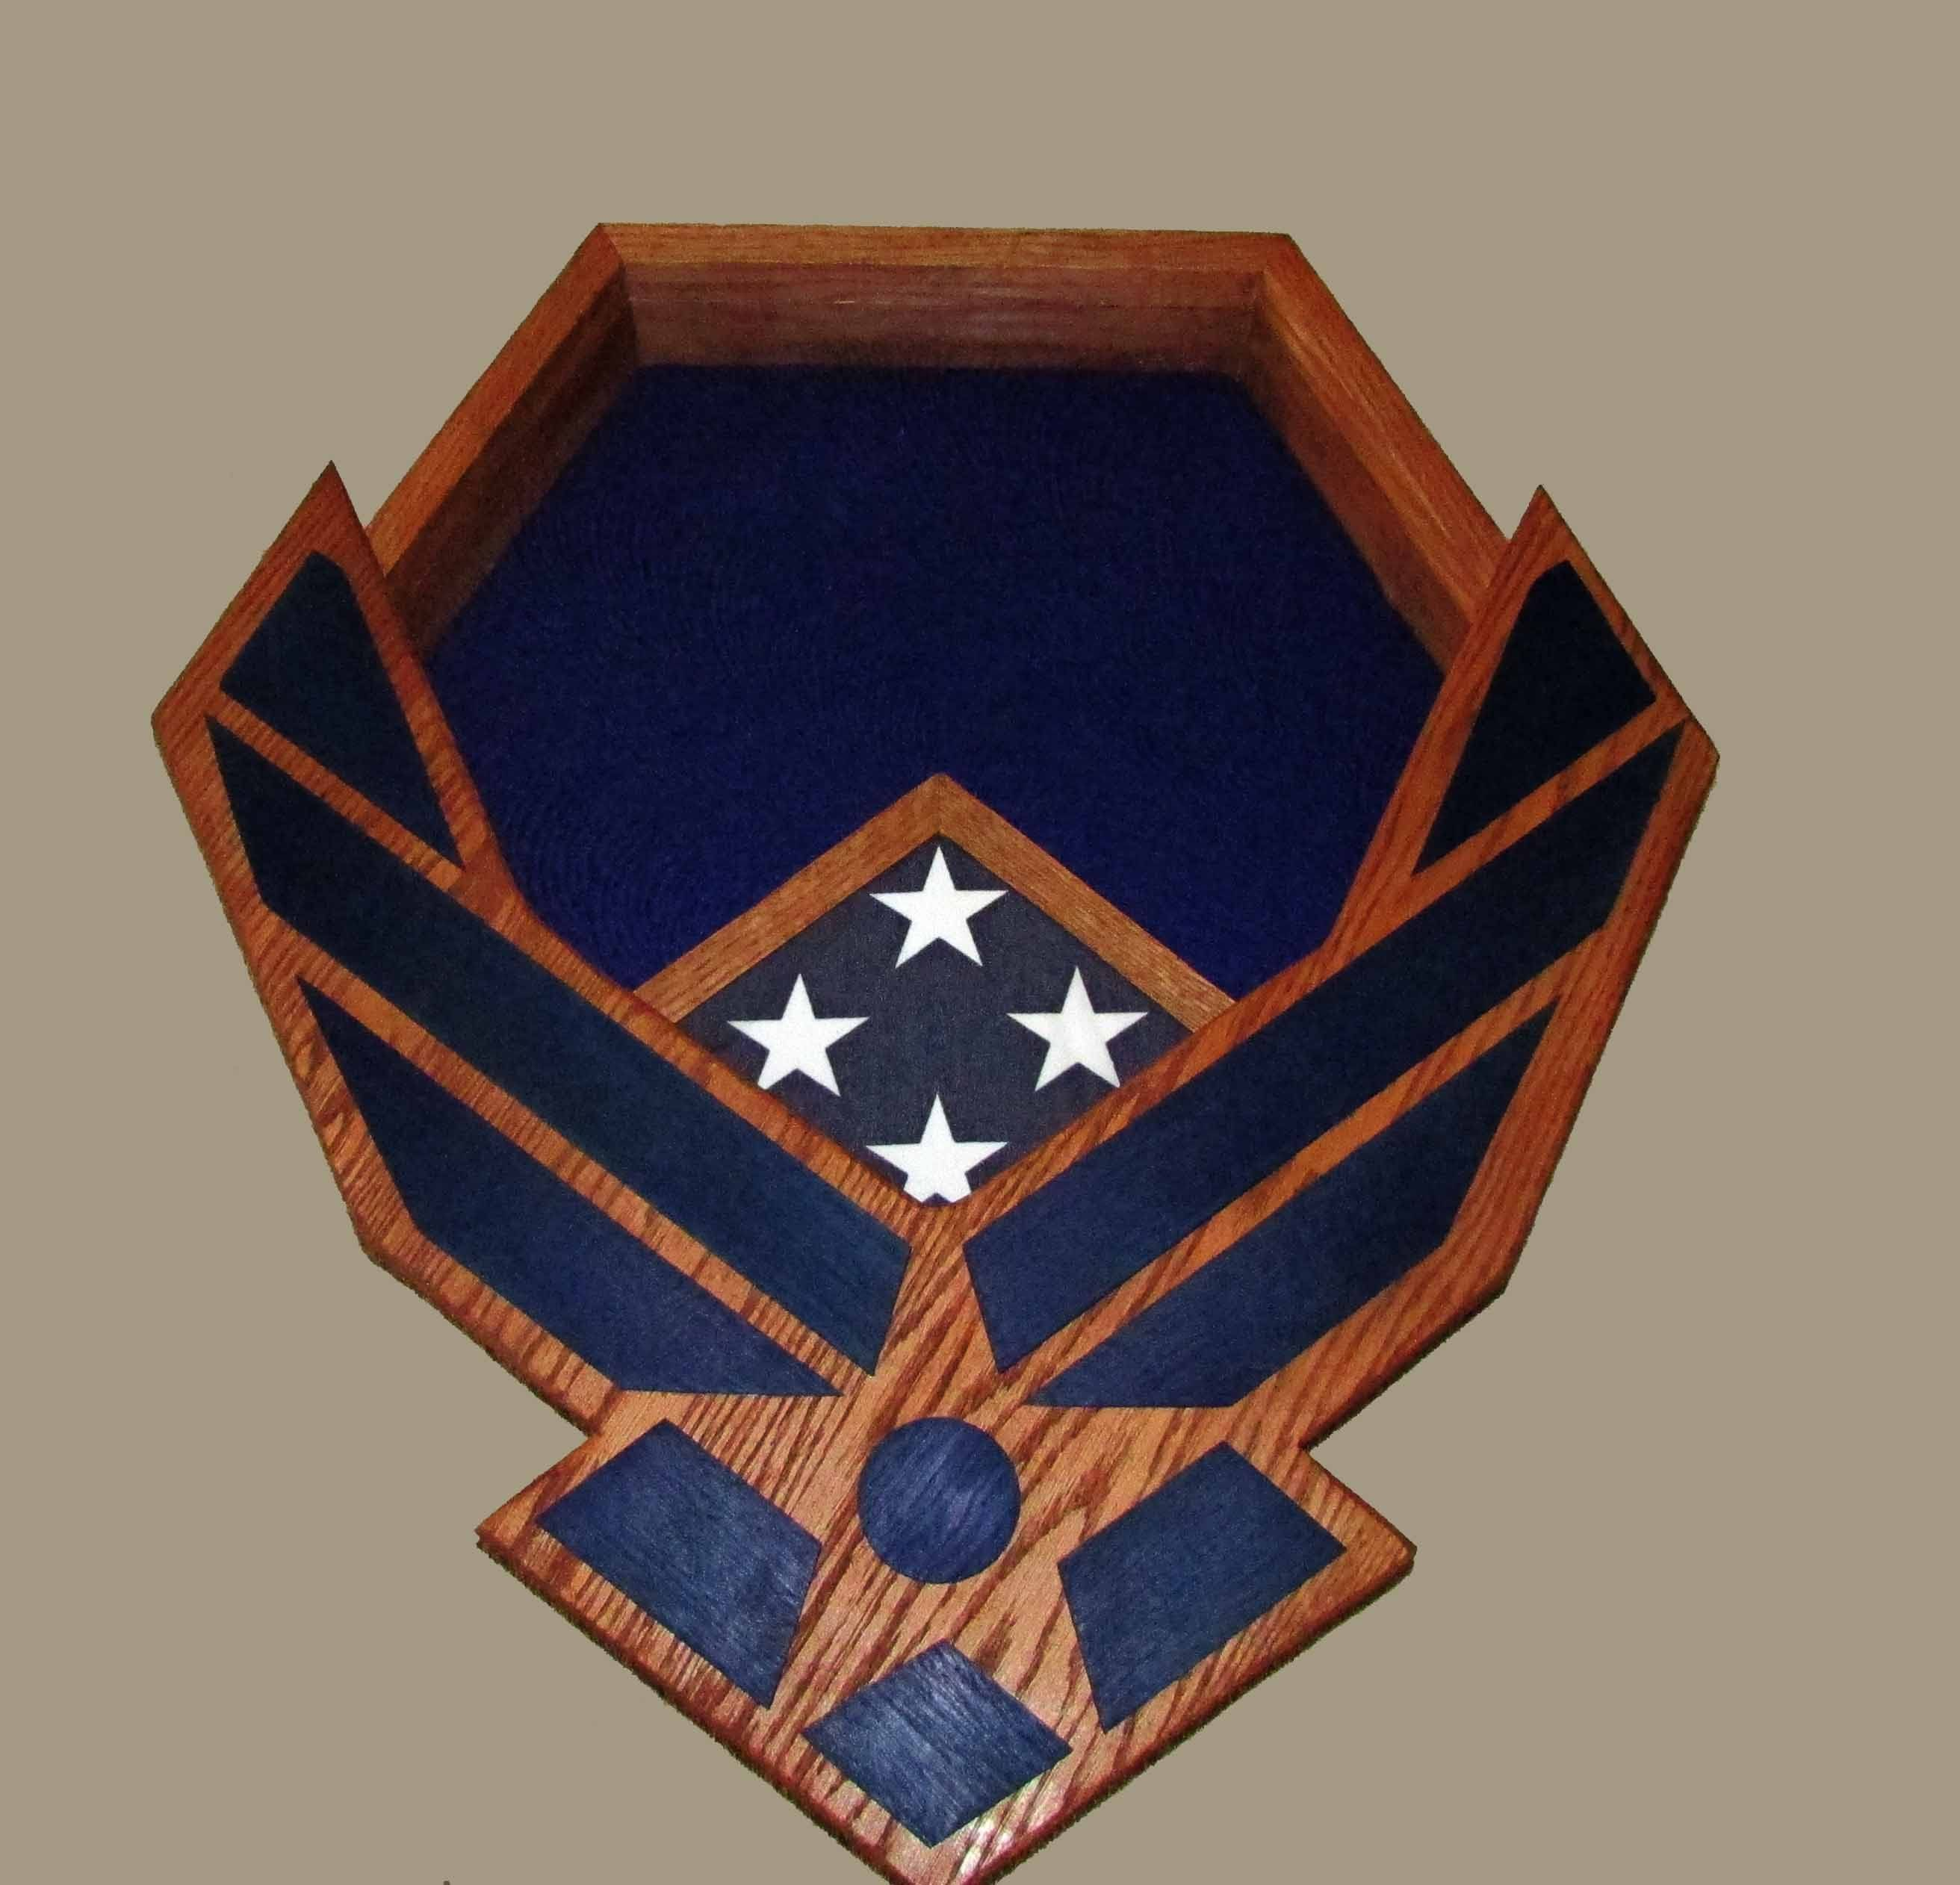 How to build your own Air Force Shadow Box DIY. This